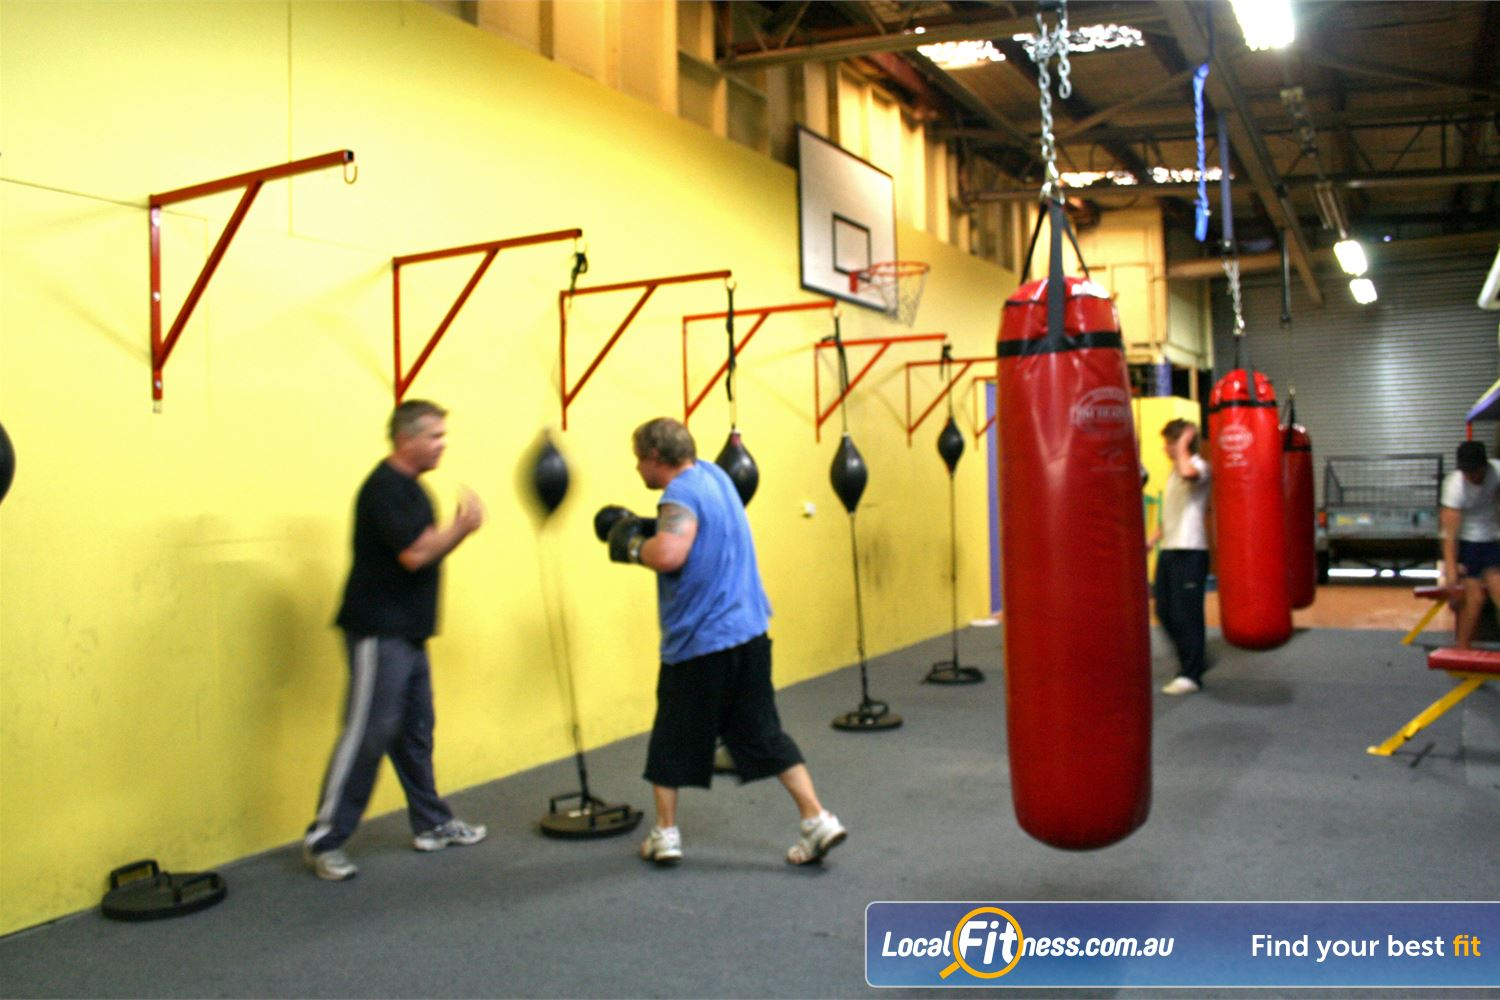 FITafex Gymnasium Essendon Try one of our Essendon boxing classes.